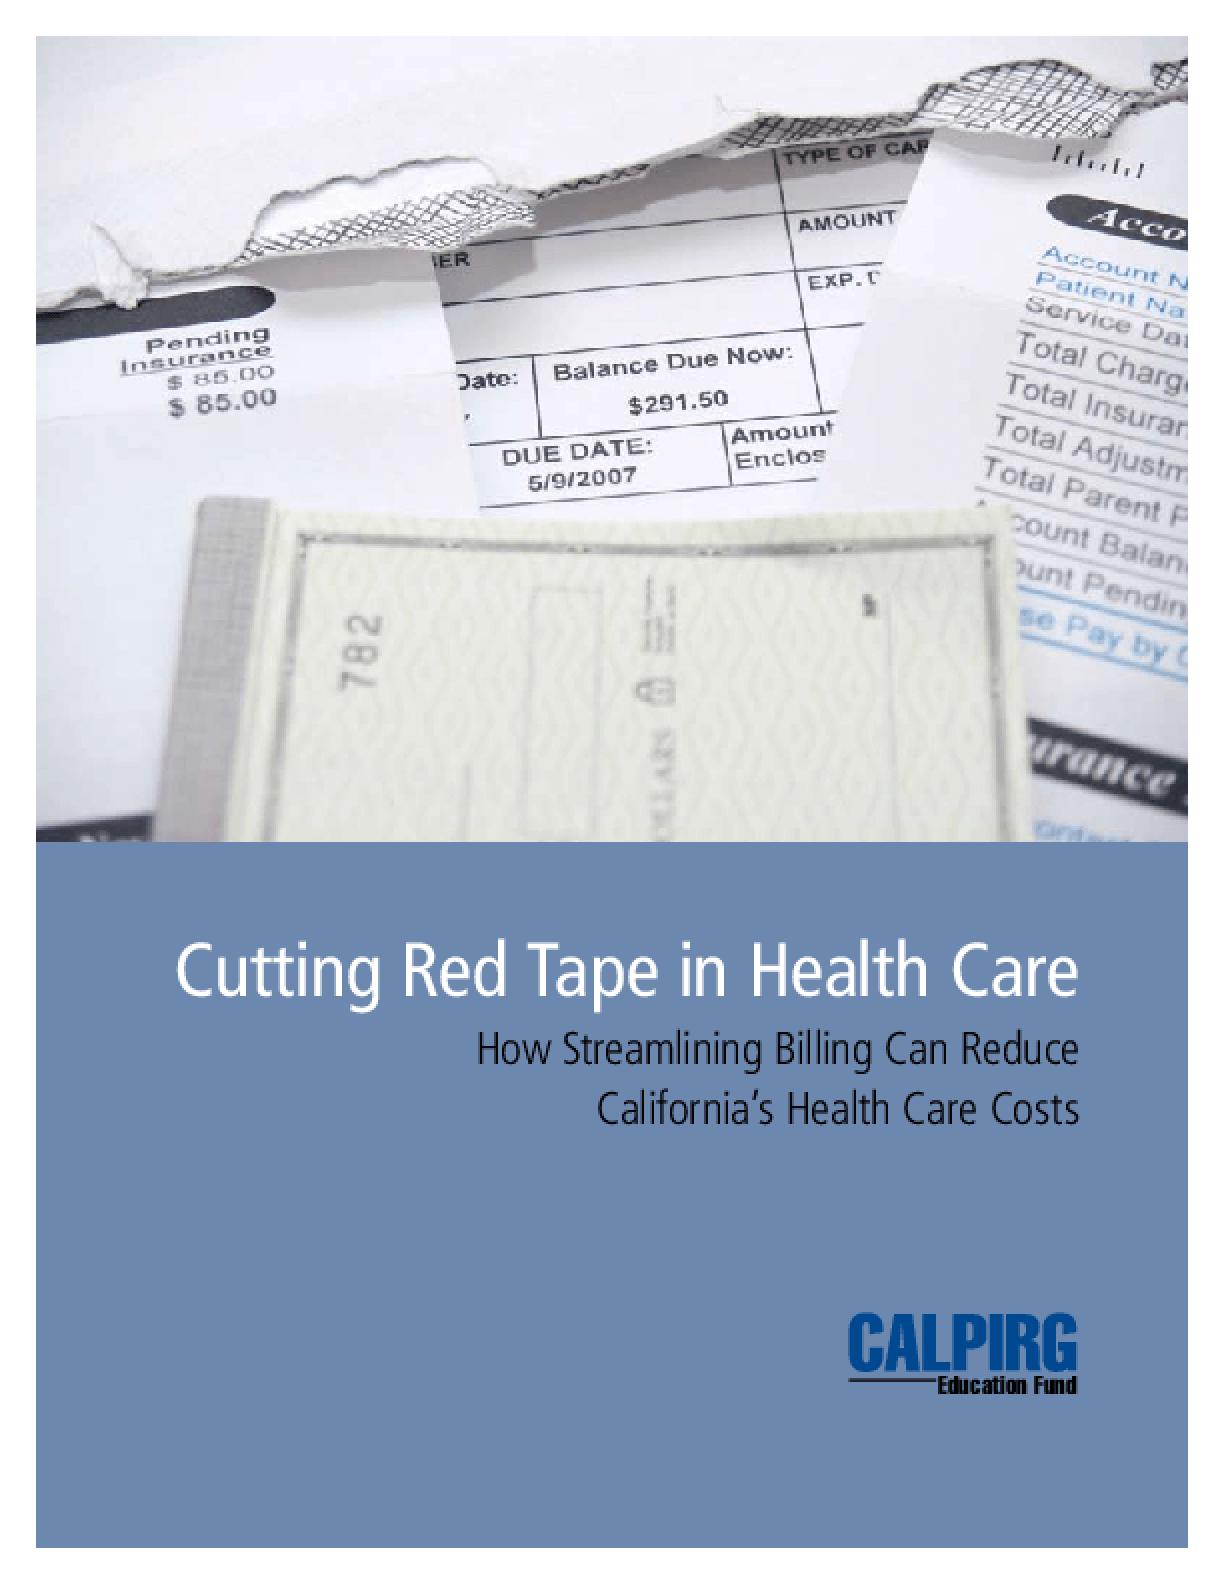 Cutting Red Tape in Health Care: How Streamlining Billing Can Reduce California's Health Care Costs